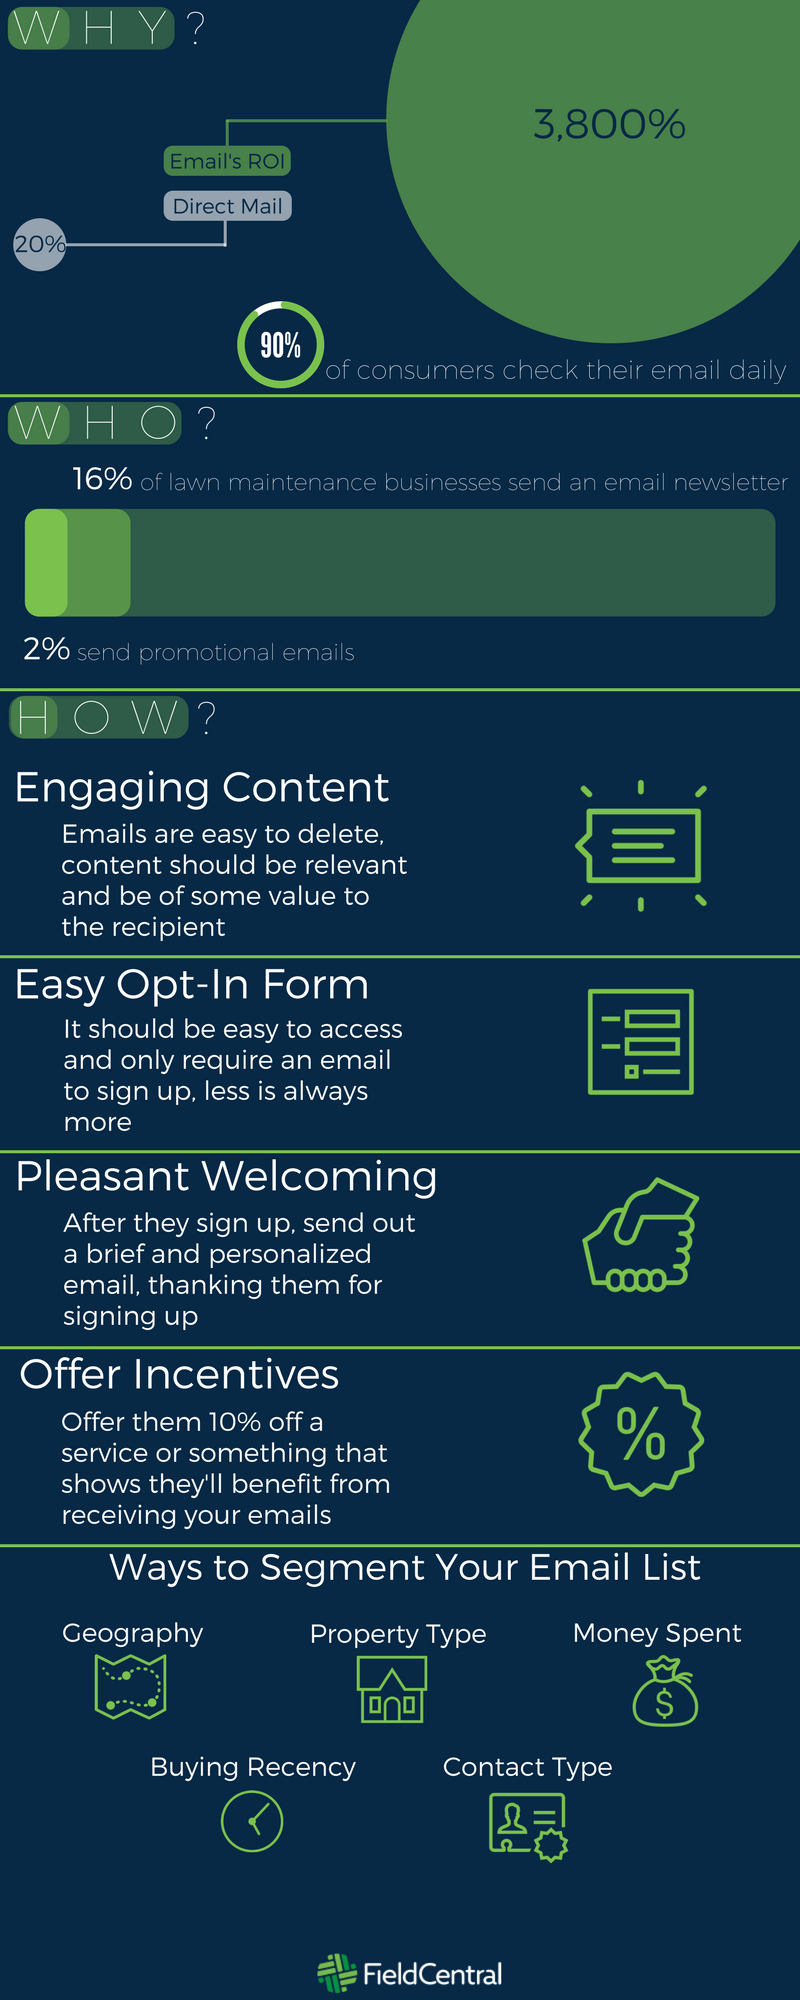 Lawn Maintenance Marketing- Better Emails, More Money (1).png